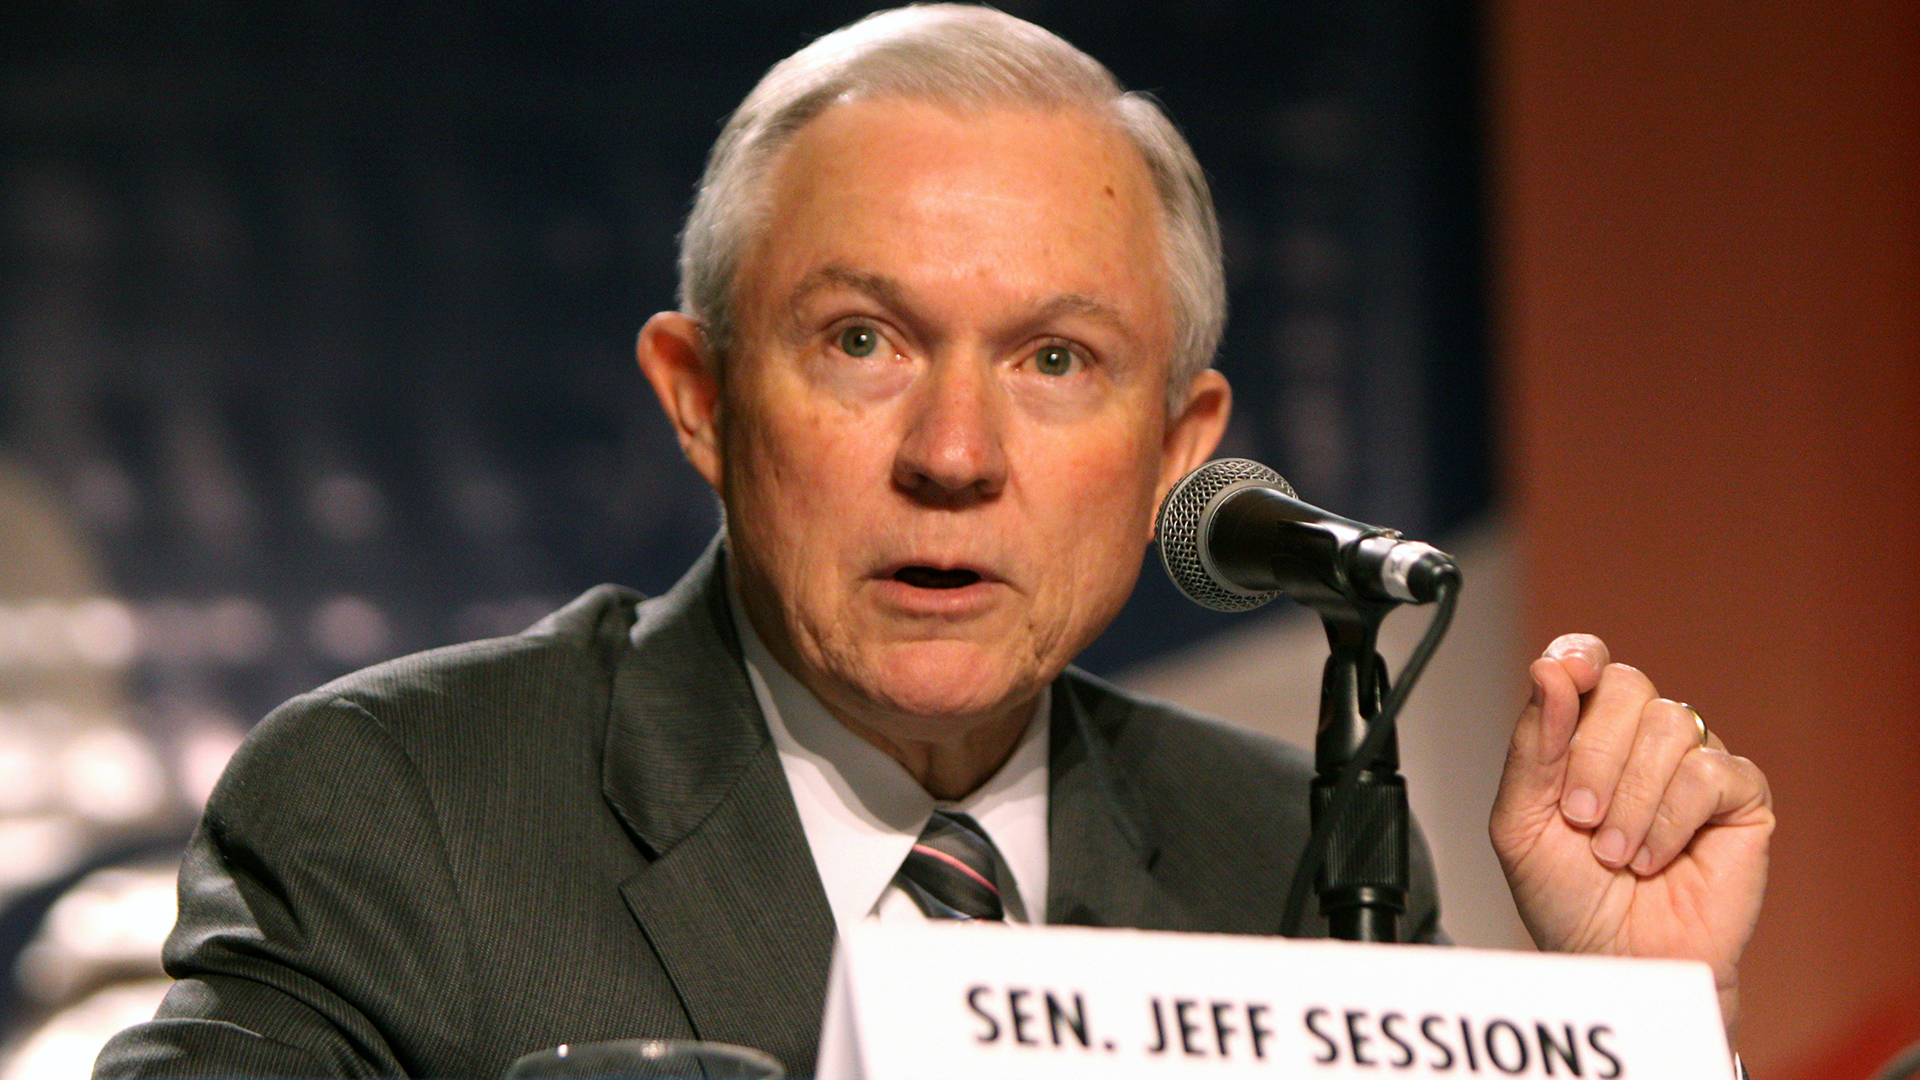 Sessions Gives Sanctuary Cities a Final Warning